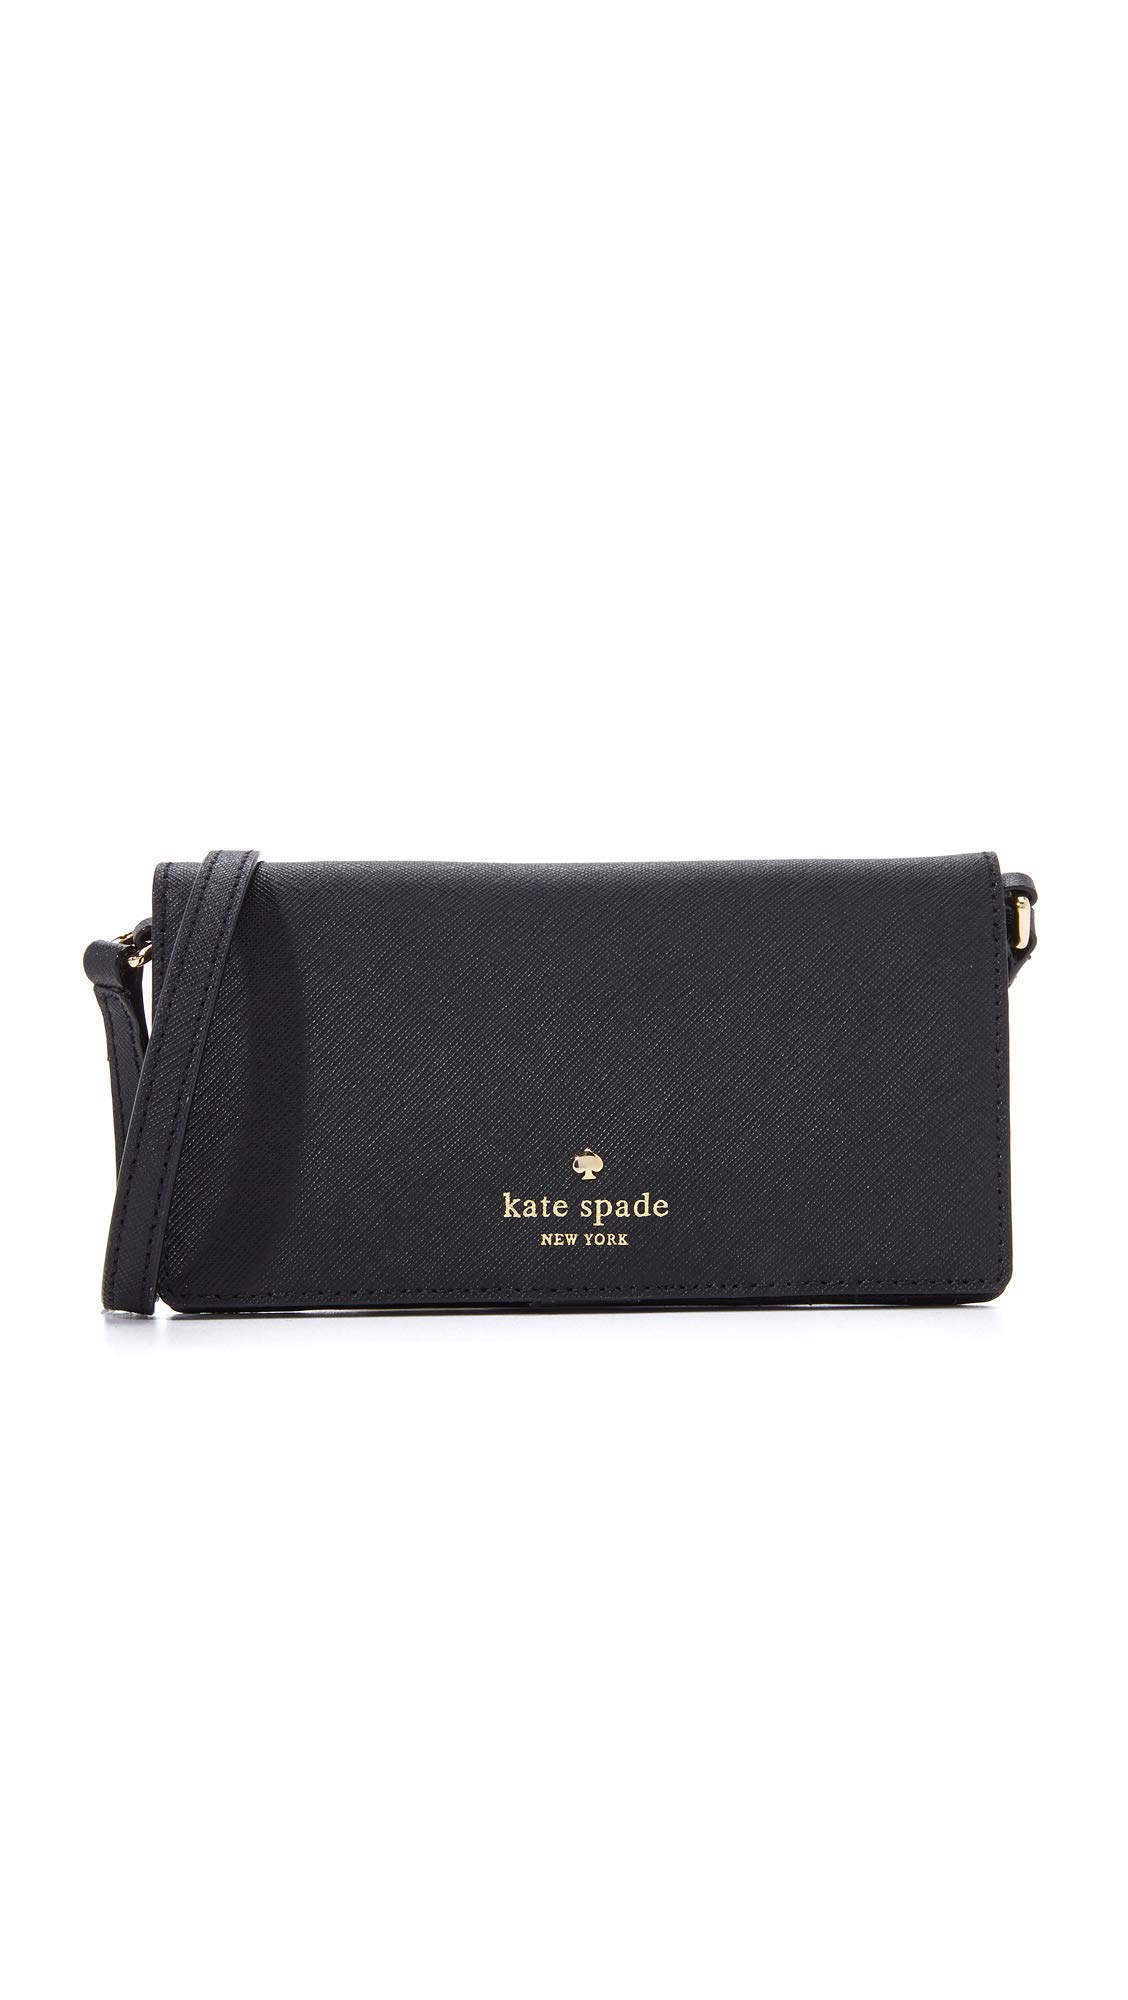 Kate Spade New York Crossbody iPhone Case for iPhone 6 Black One Size